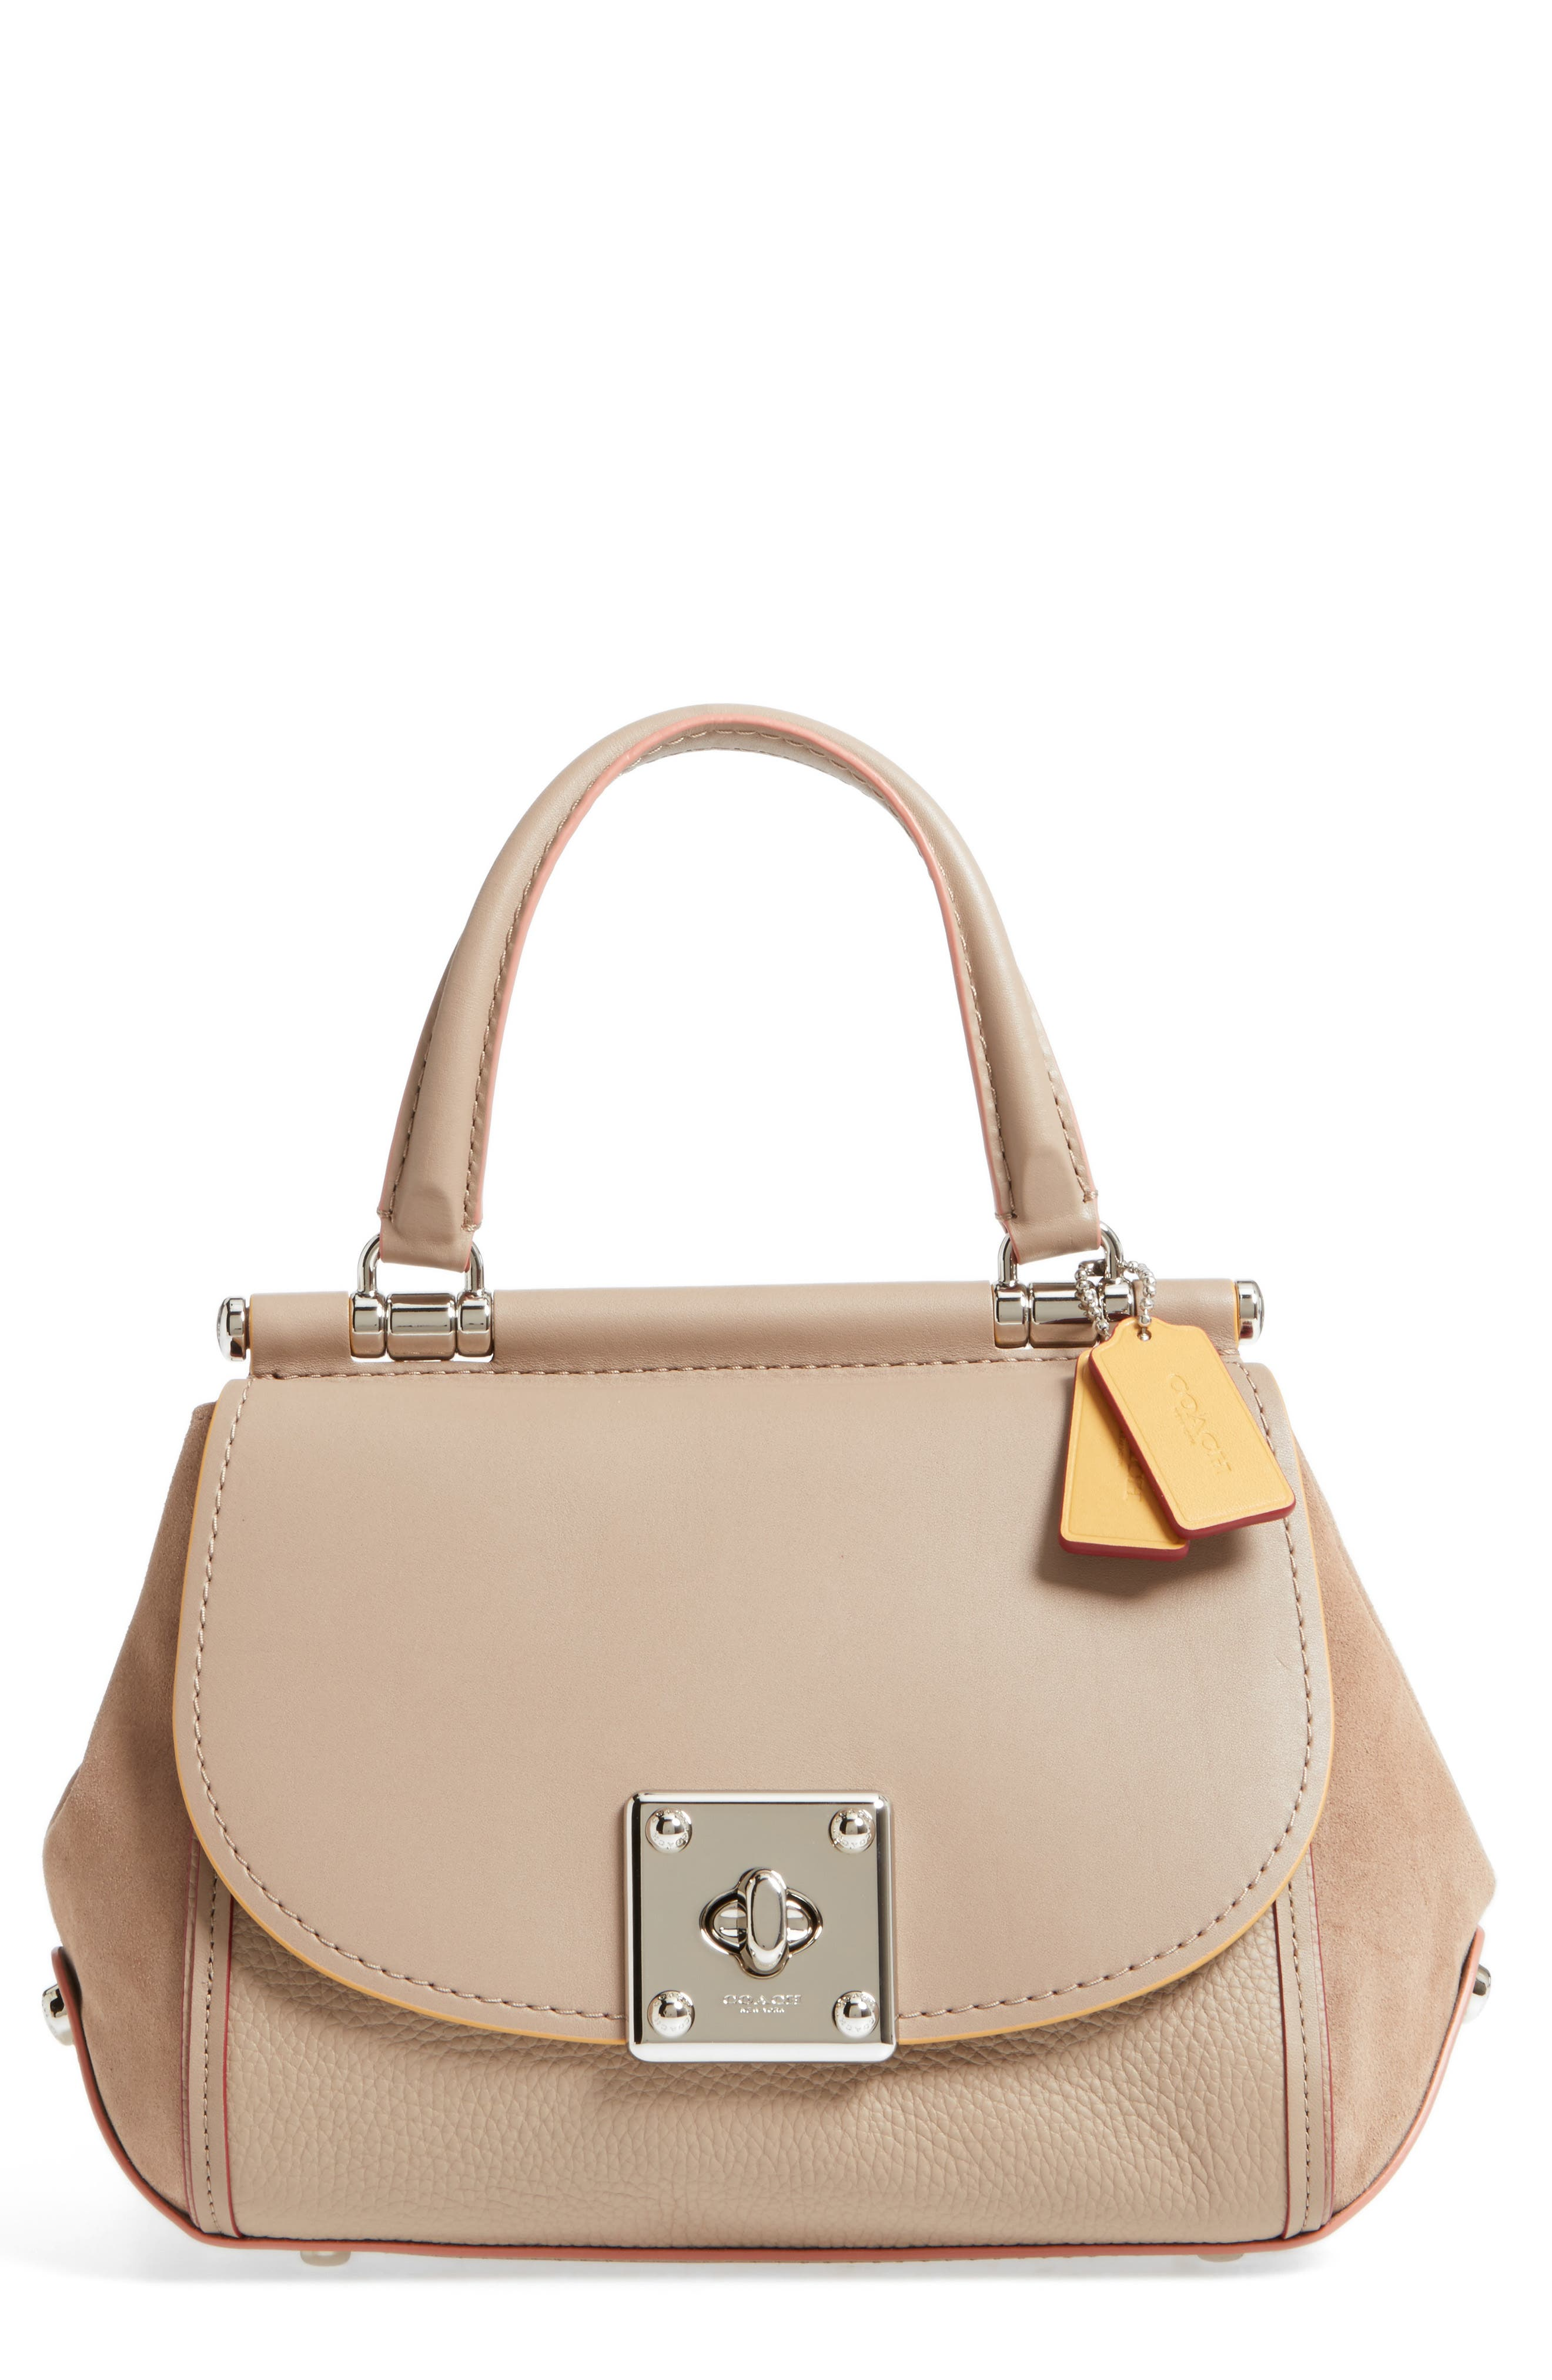 Edgestain Mixed Leather Top Handle Satchel,                         Main,                         color,